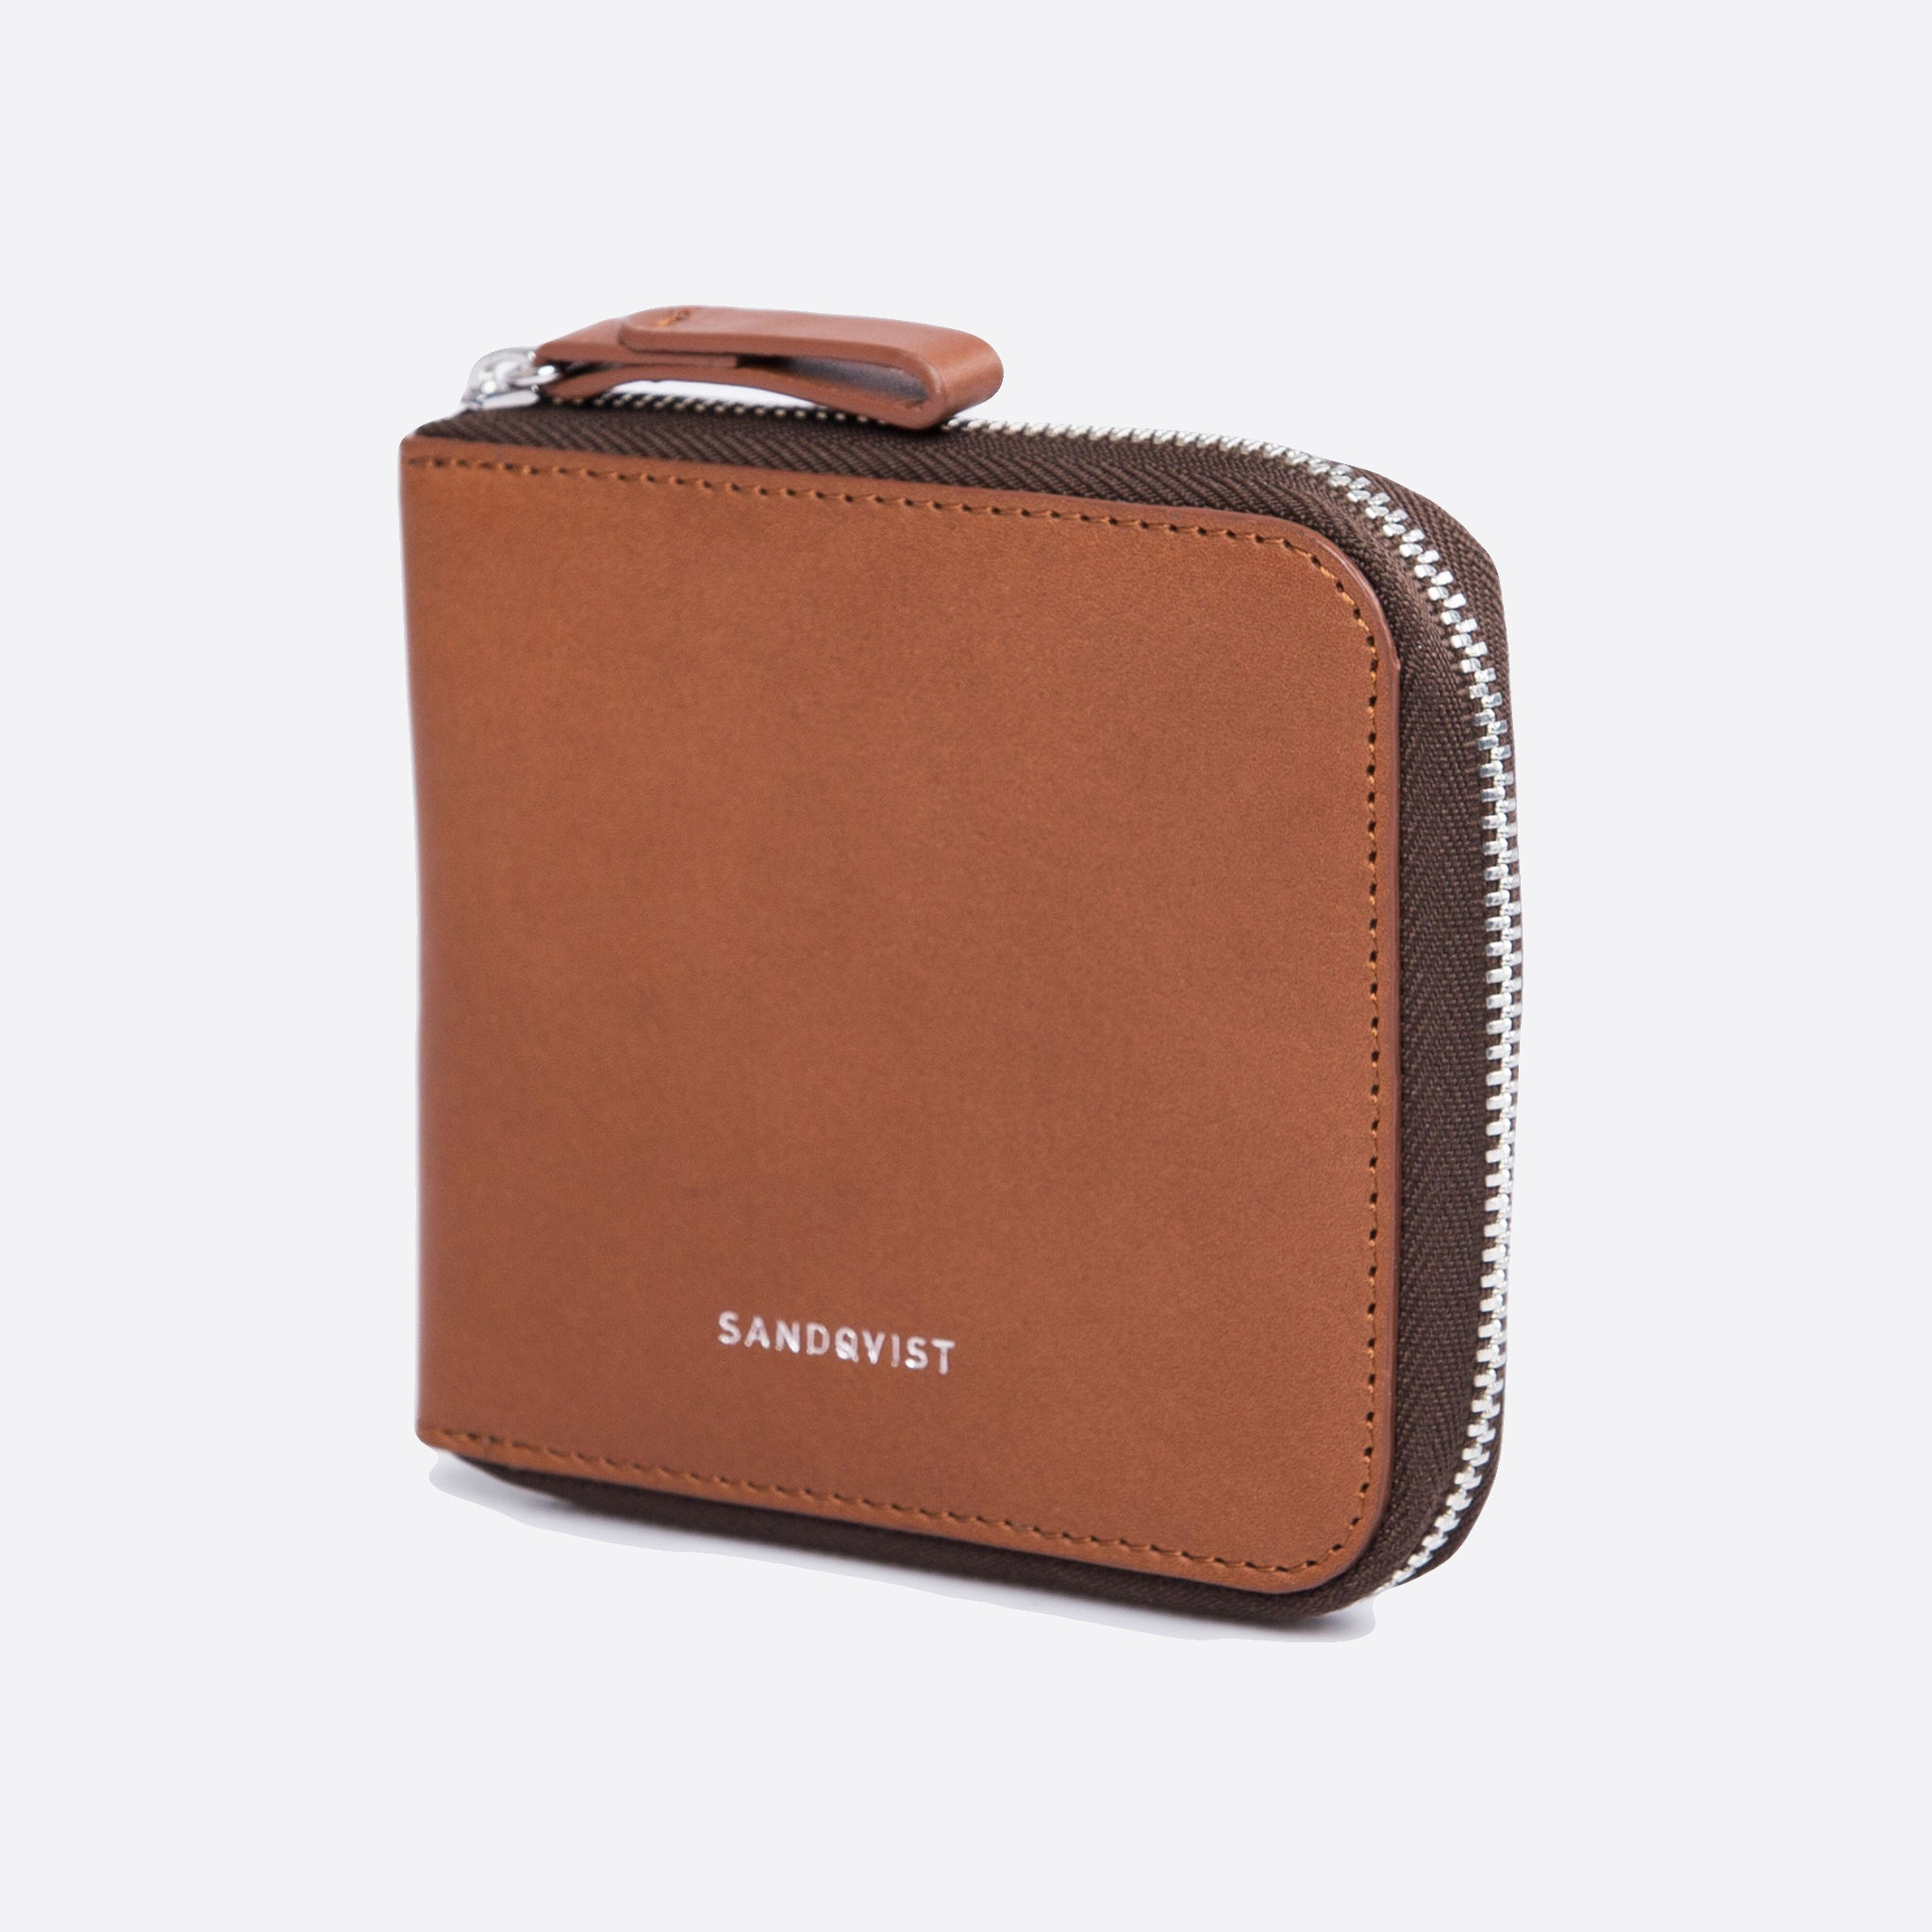 Sandqvist Tyko Wallet in Cognac Brown